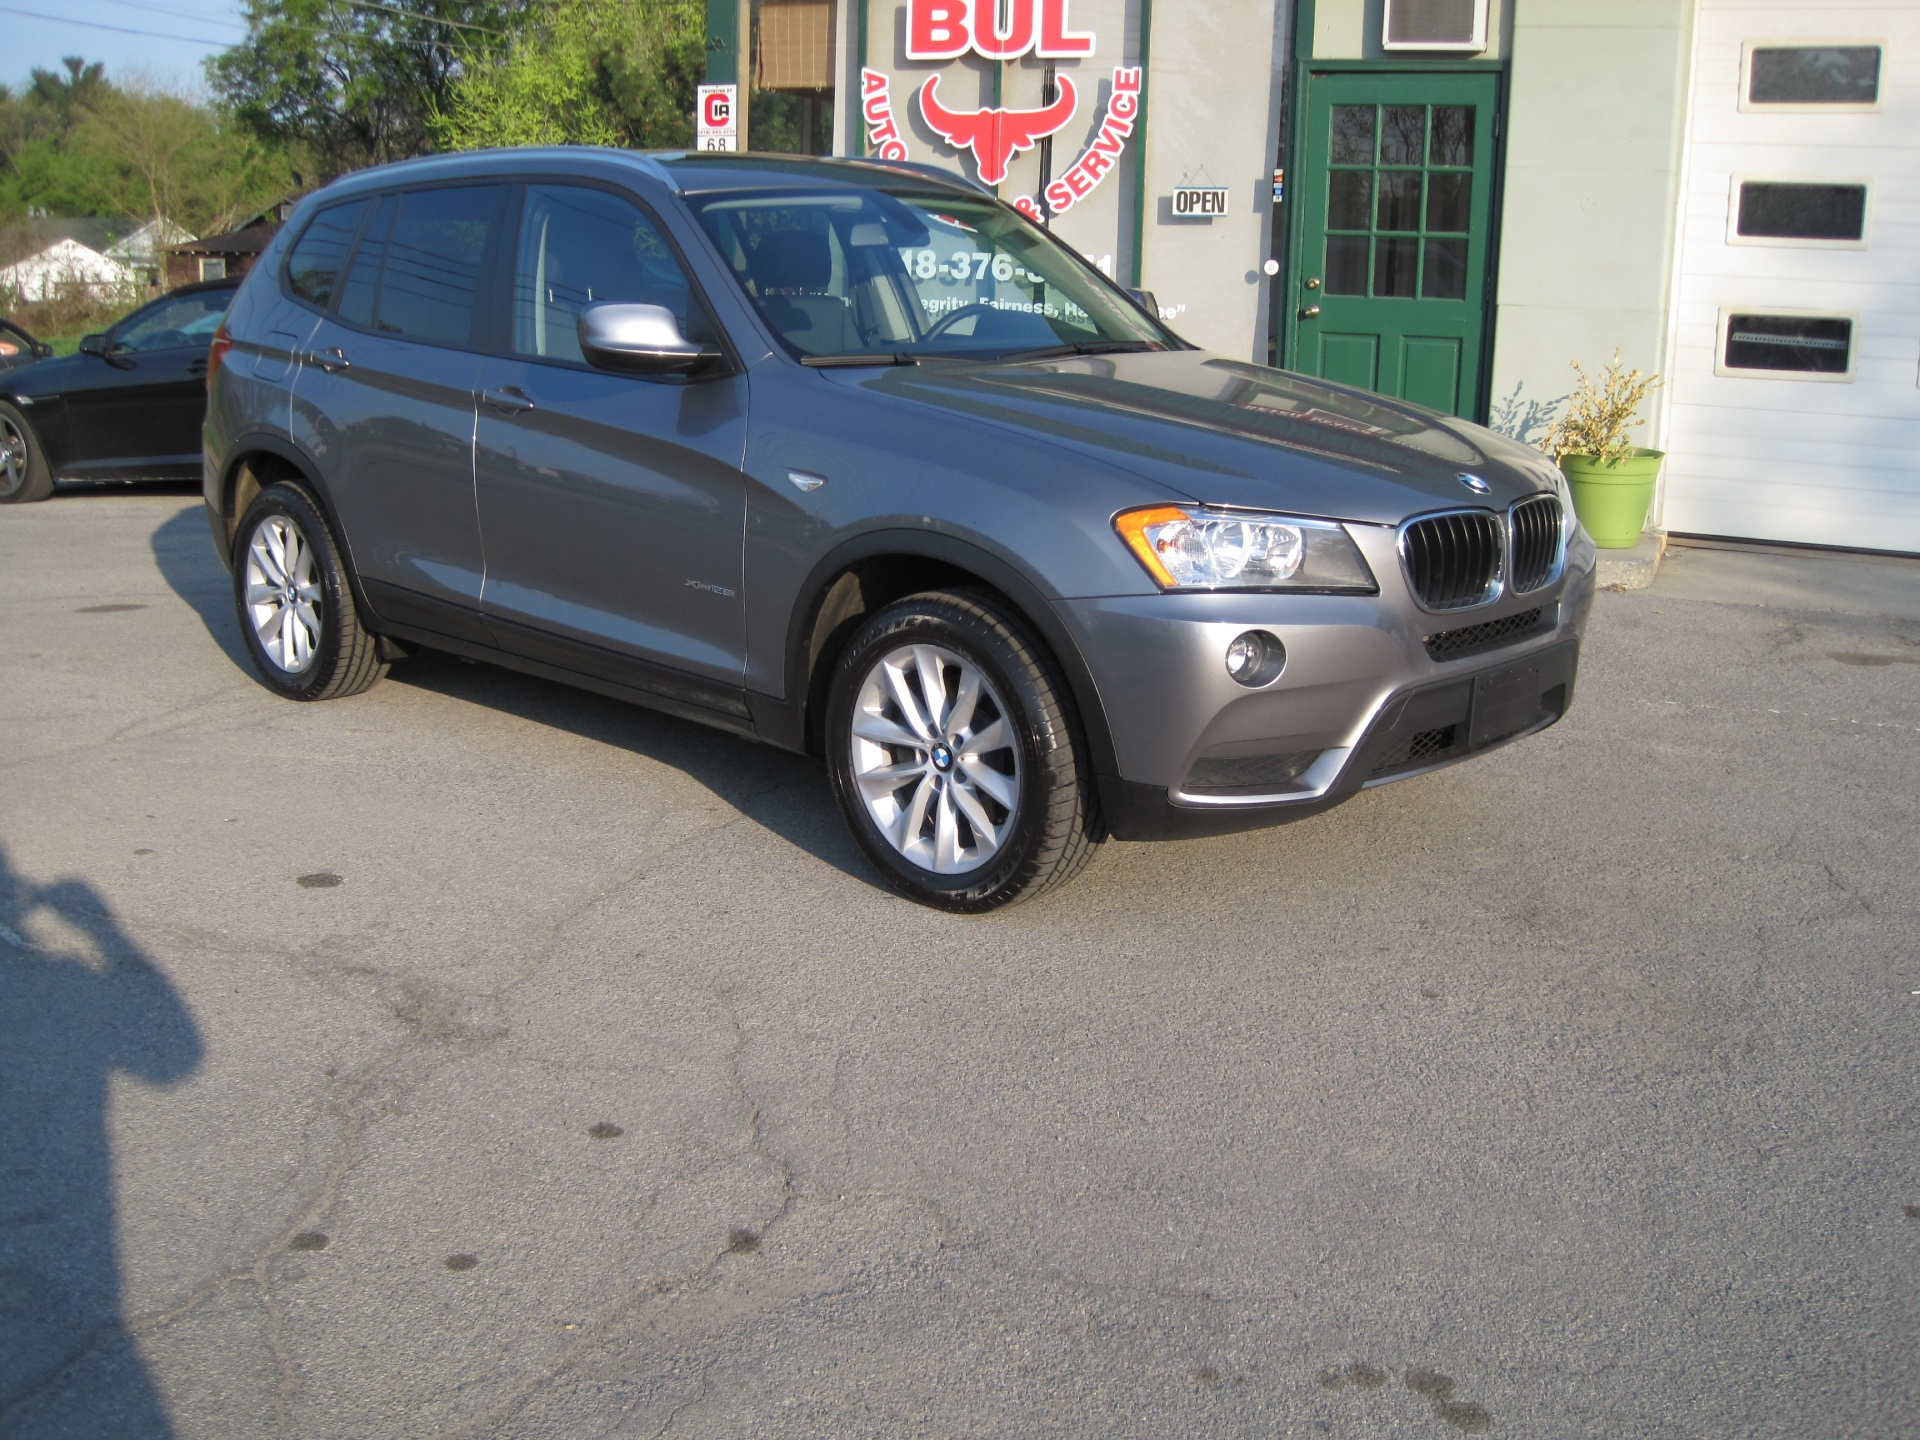 2013 bmw x3 xdrive28i awd 1 owner very clean 4 new tires stock 15060 for sale near albany ny. Black Bedroom Furniture Sets. Home Design Ideas